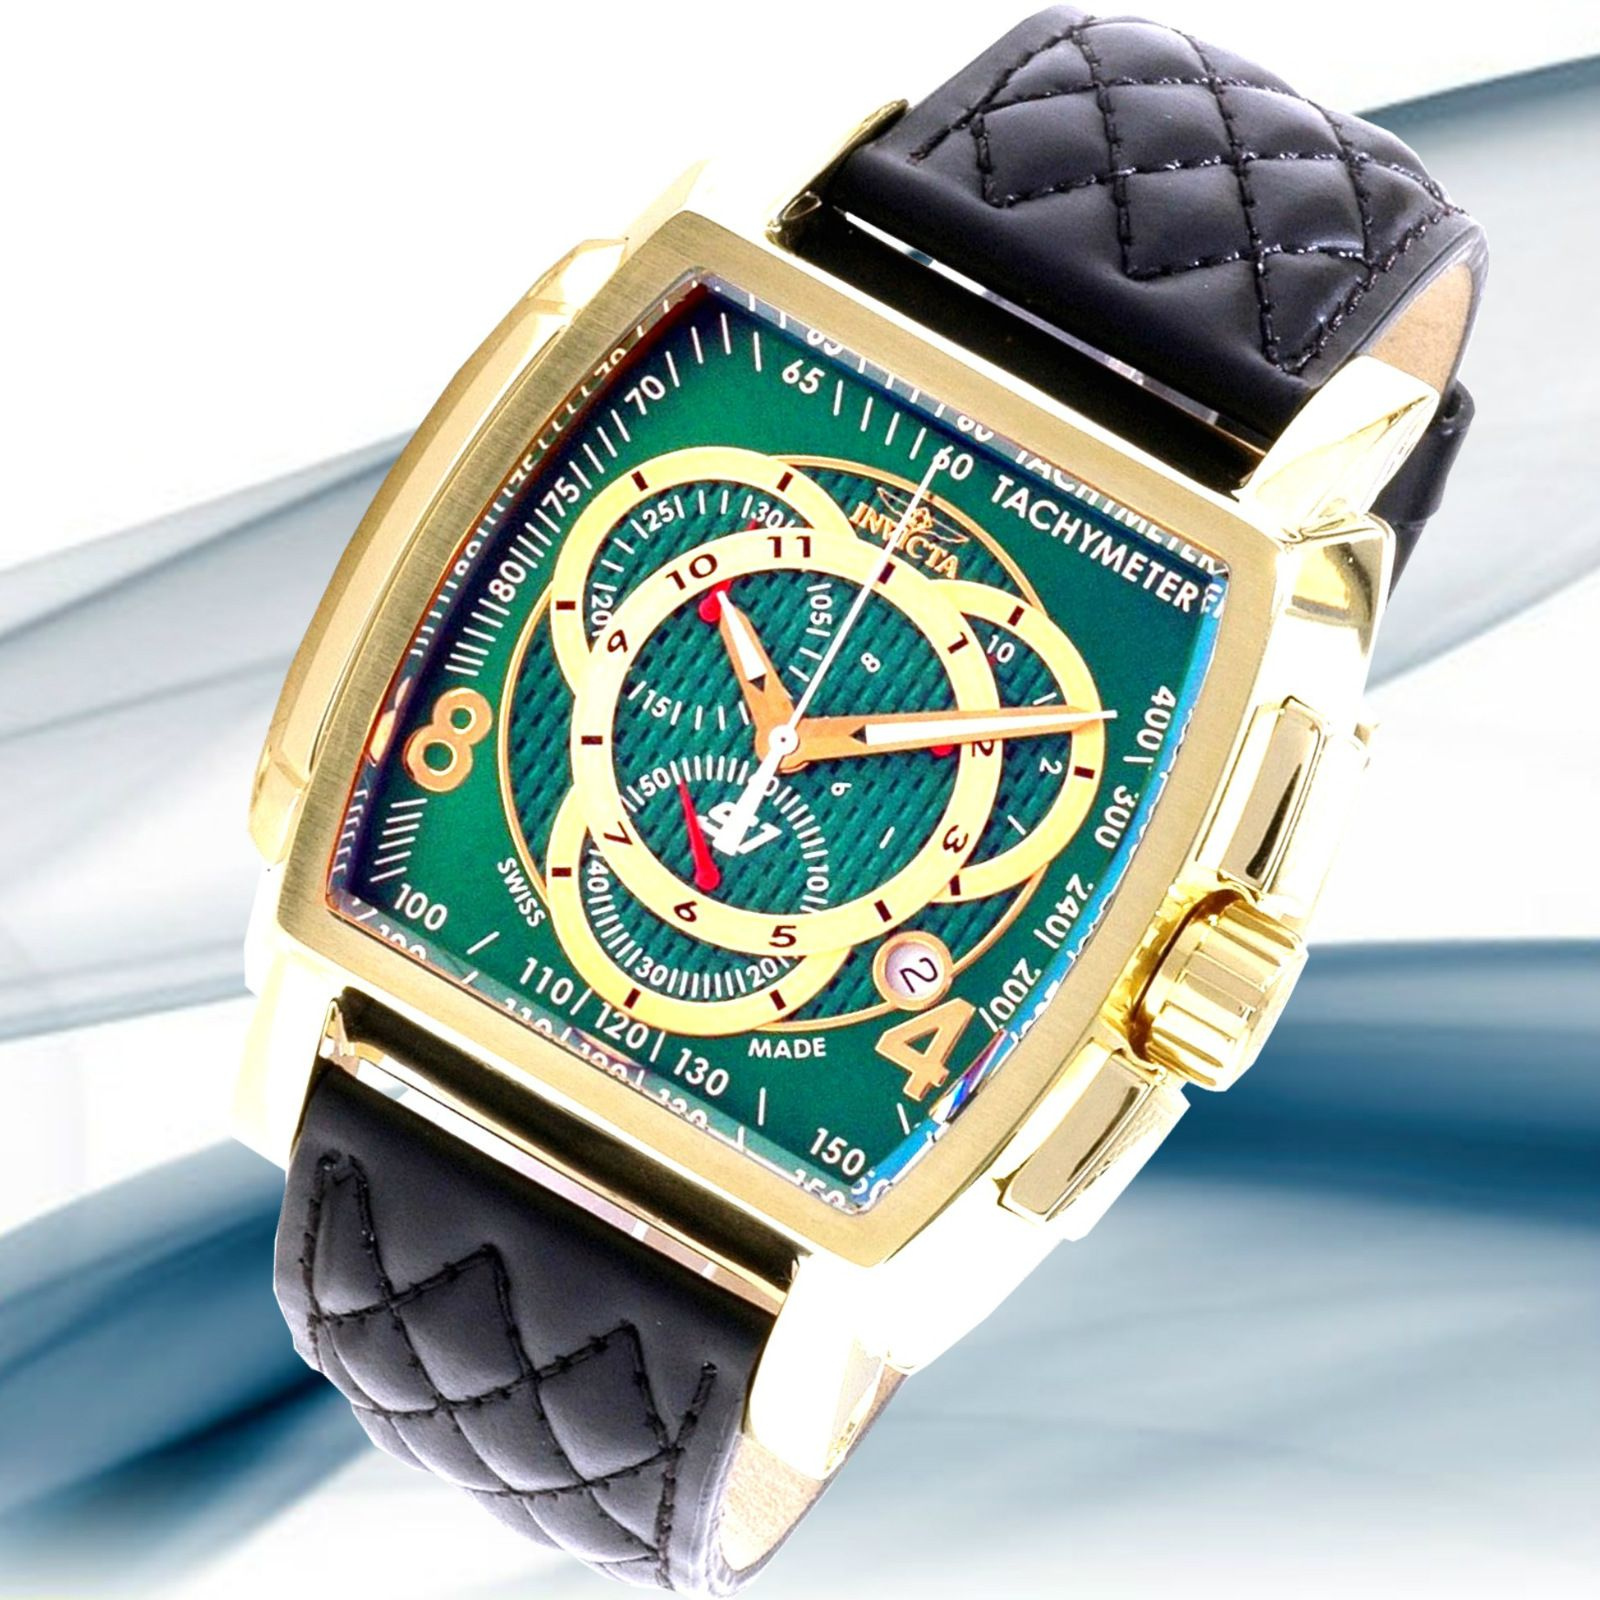 w martin jaeger wristwatch compressor lg news extreme celebrates auto with of watches racing industry jlc new lecoultre three alarm aston years master